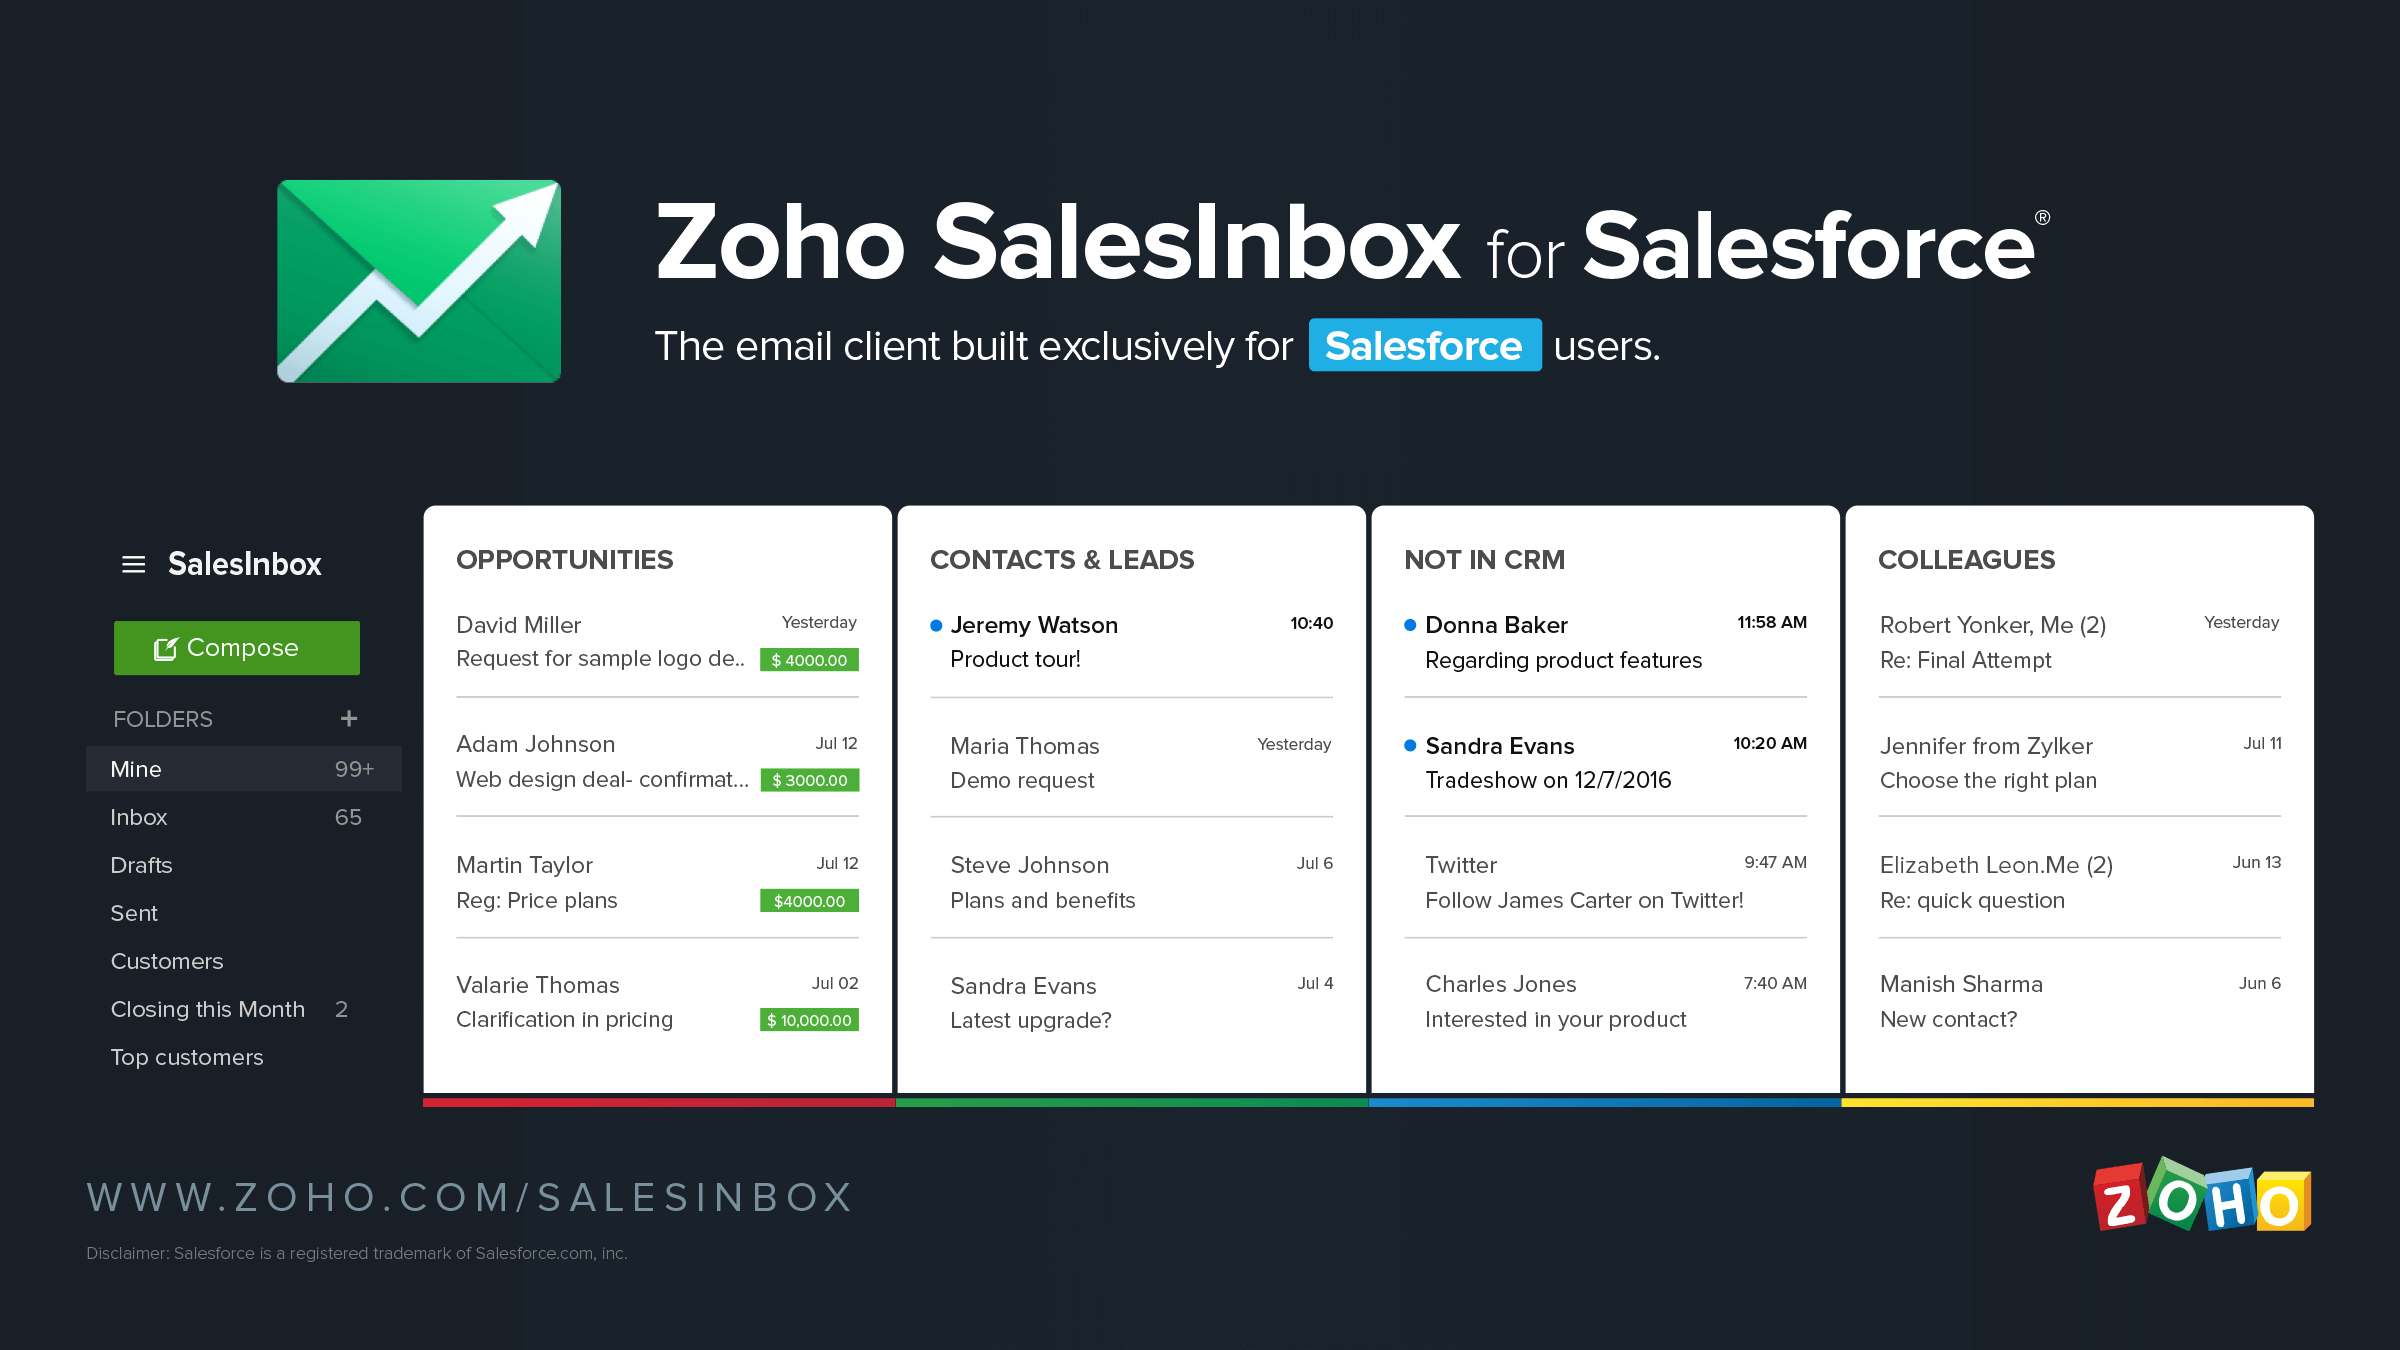 Announcing Zoho SalesInbox for Salesforce